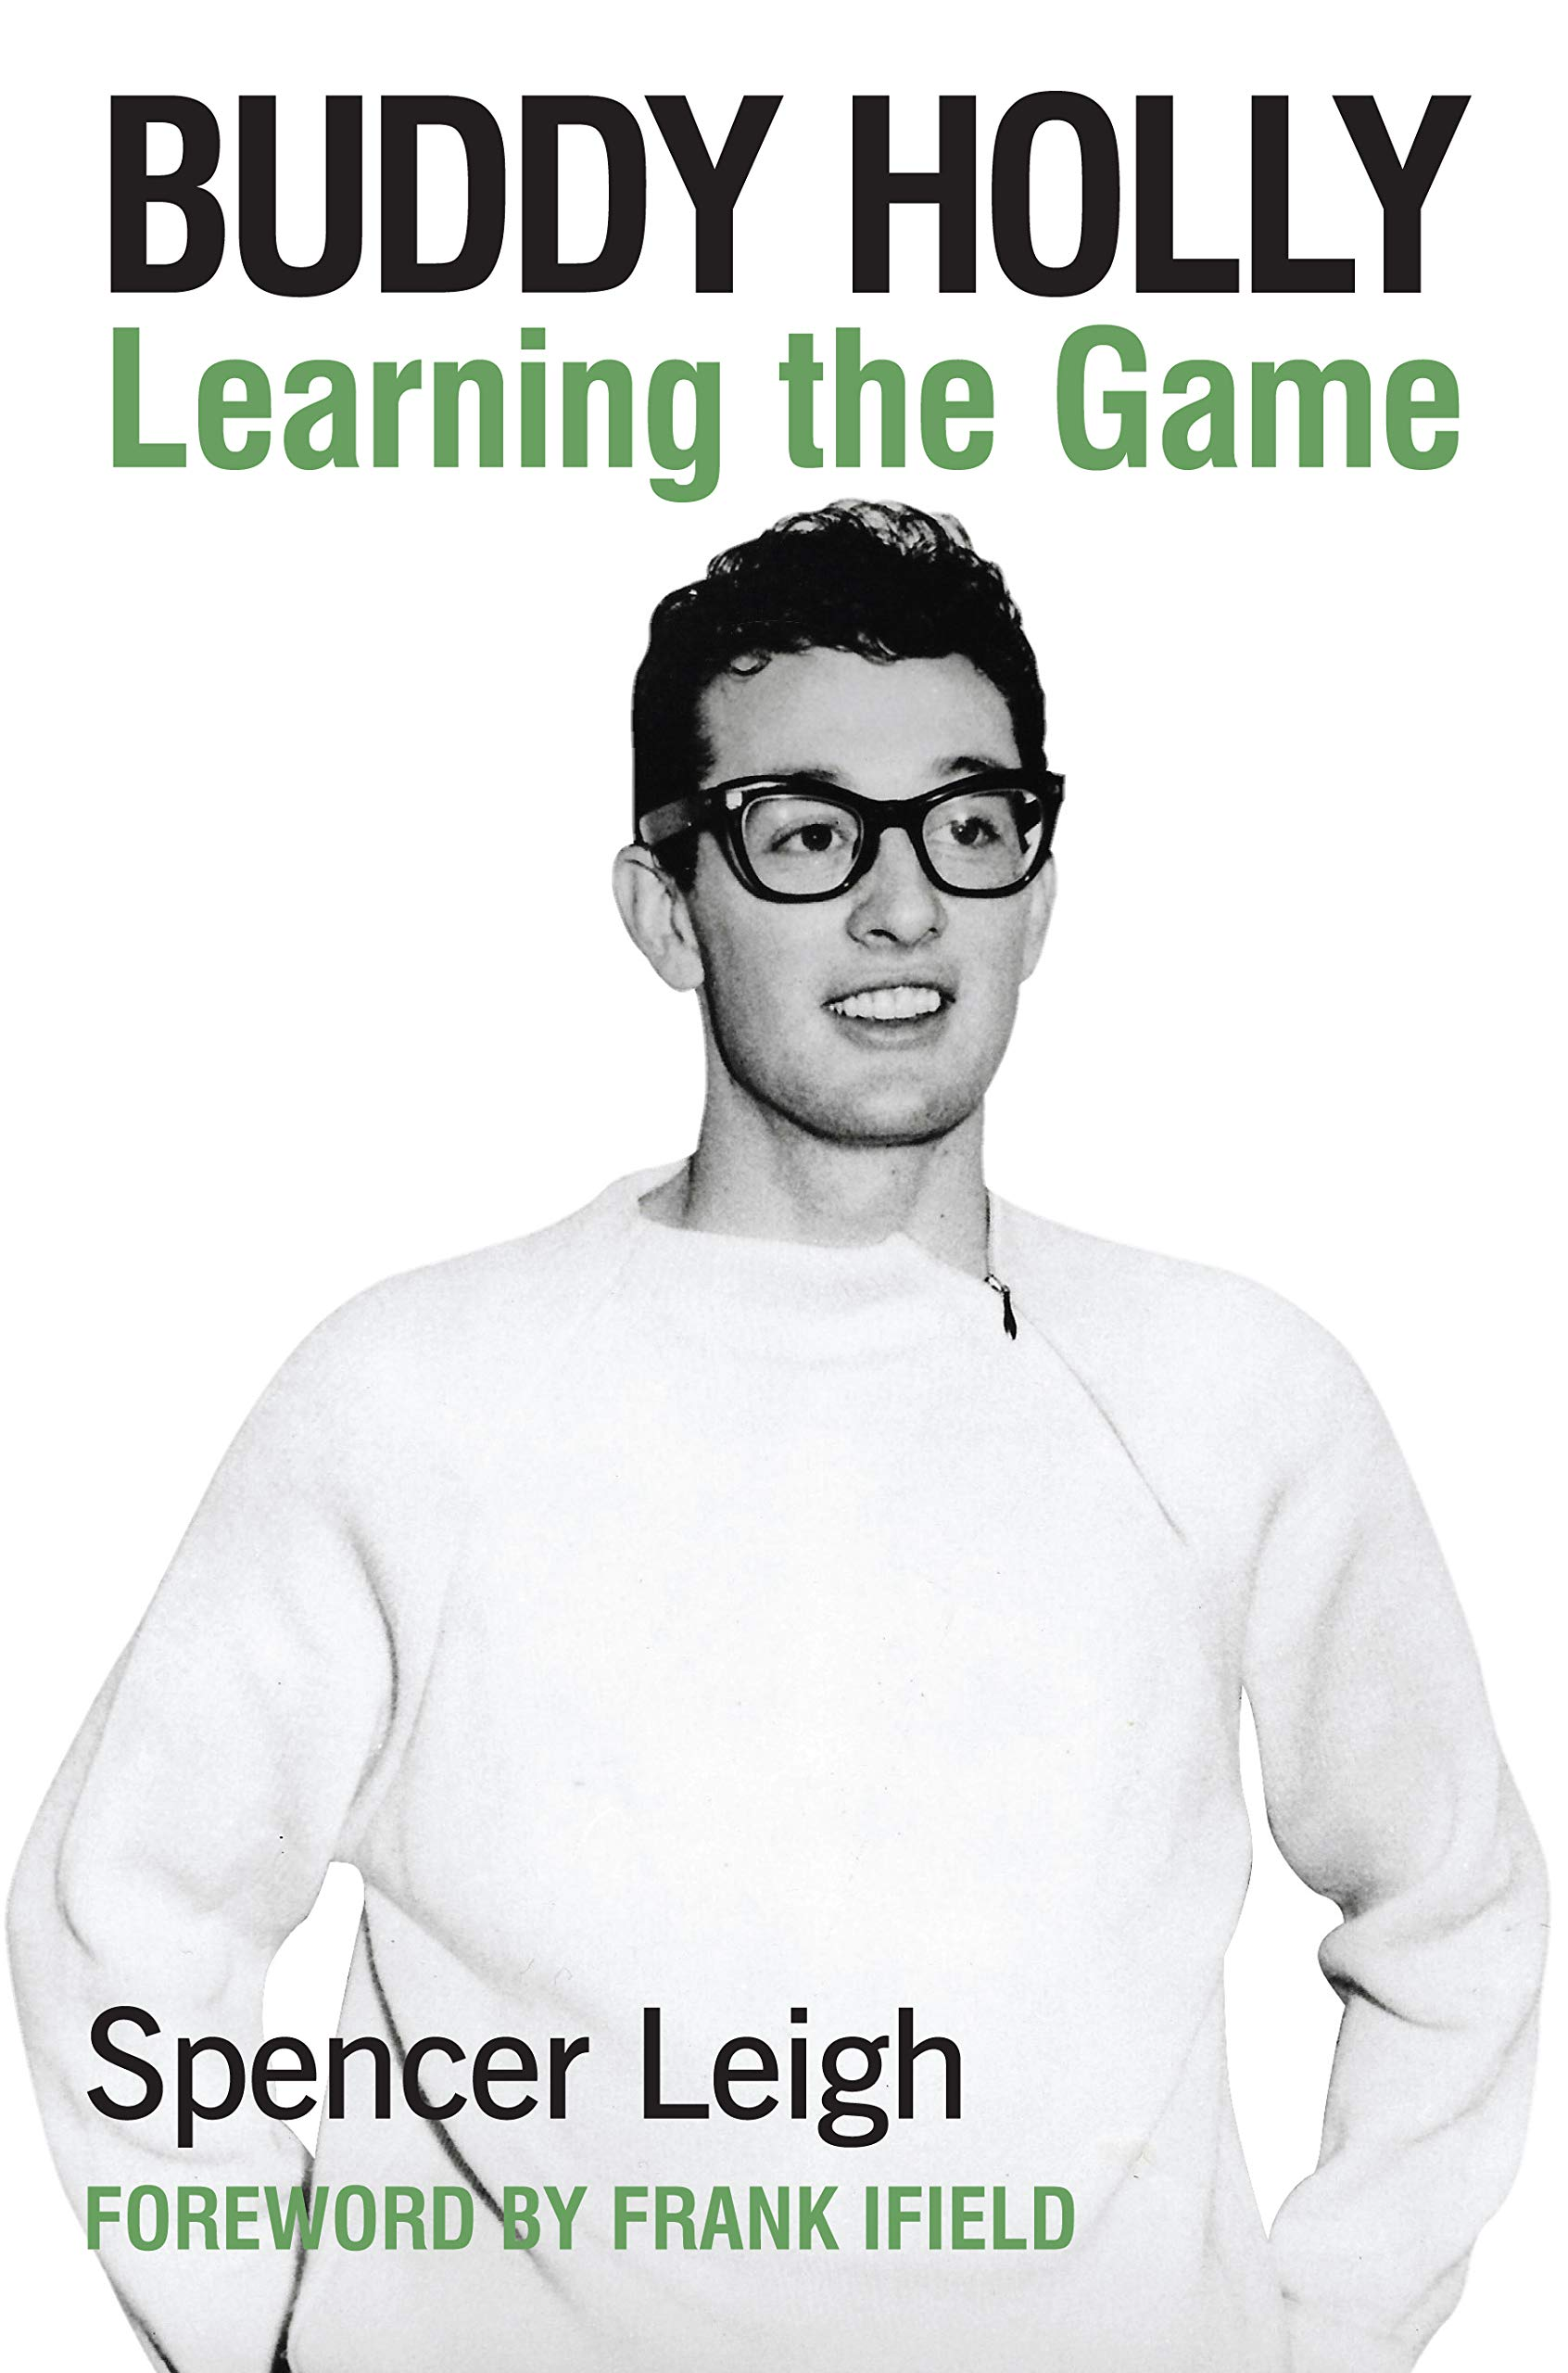 Buddy Holly Learning the Game.jpg